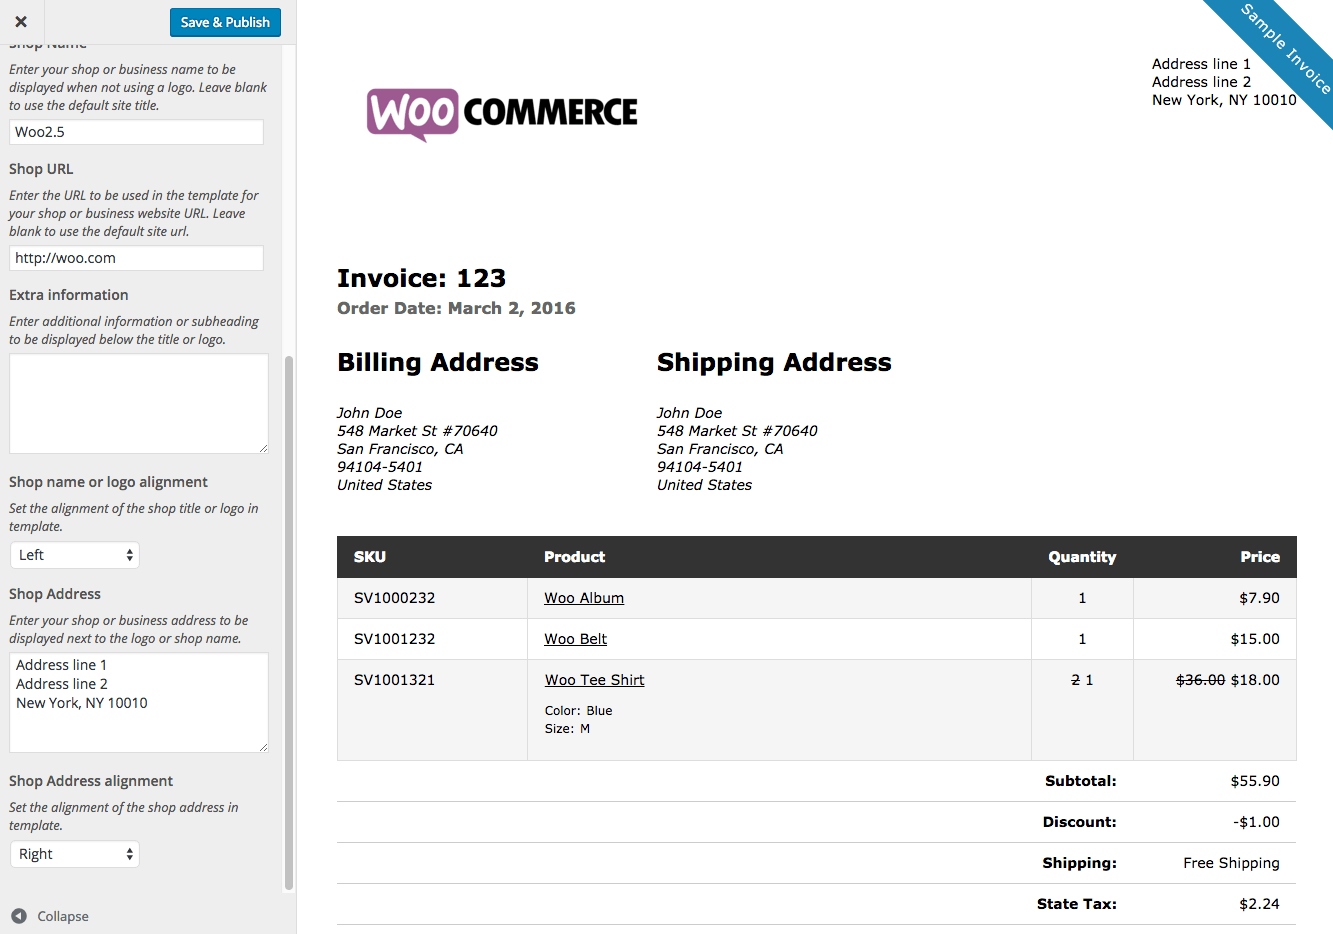 Sandiegolocksmithsus  Stunning Woocommerce Print Invoices Amp Packing Lists  Woocommerce Docs With Lovely Woocommerce Print Invoices  Packing Lists Customizer With Alluring I Acknowledge Receipt Also Crock Pot Receipts In Addition Acknowledging Receipt And What Is A Gross Receipt As Well As Contractor Receipt Template Additionally Easy Receipts From Docswoocommercecom With Sandiegolocksmithsus  Lovely Woocommerce Print Invoices Amp Packing Lists  Woocommerce Docs With Alluring Woocommerce Print Invoices  Packing Lists Customizer And Stunning I Acknowledge Receipt Also Crock Pot Receipts In Addition Acknowledging Receipt From Docswoocommercecom